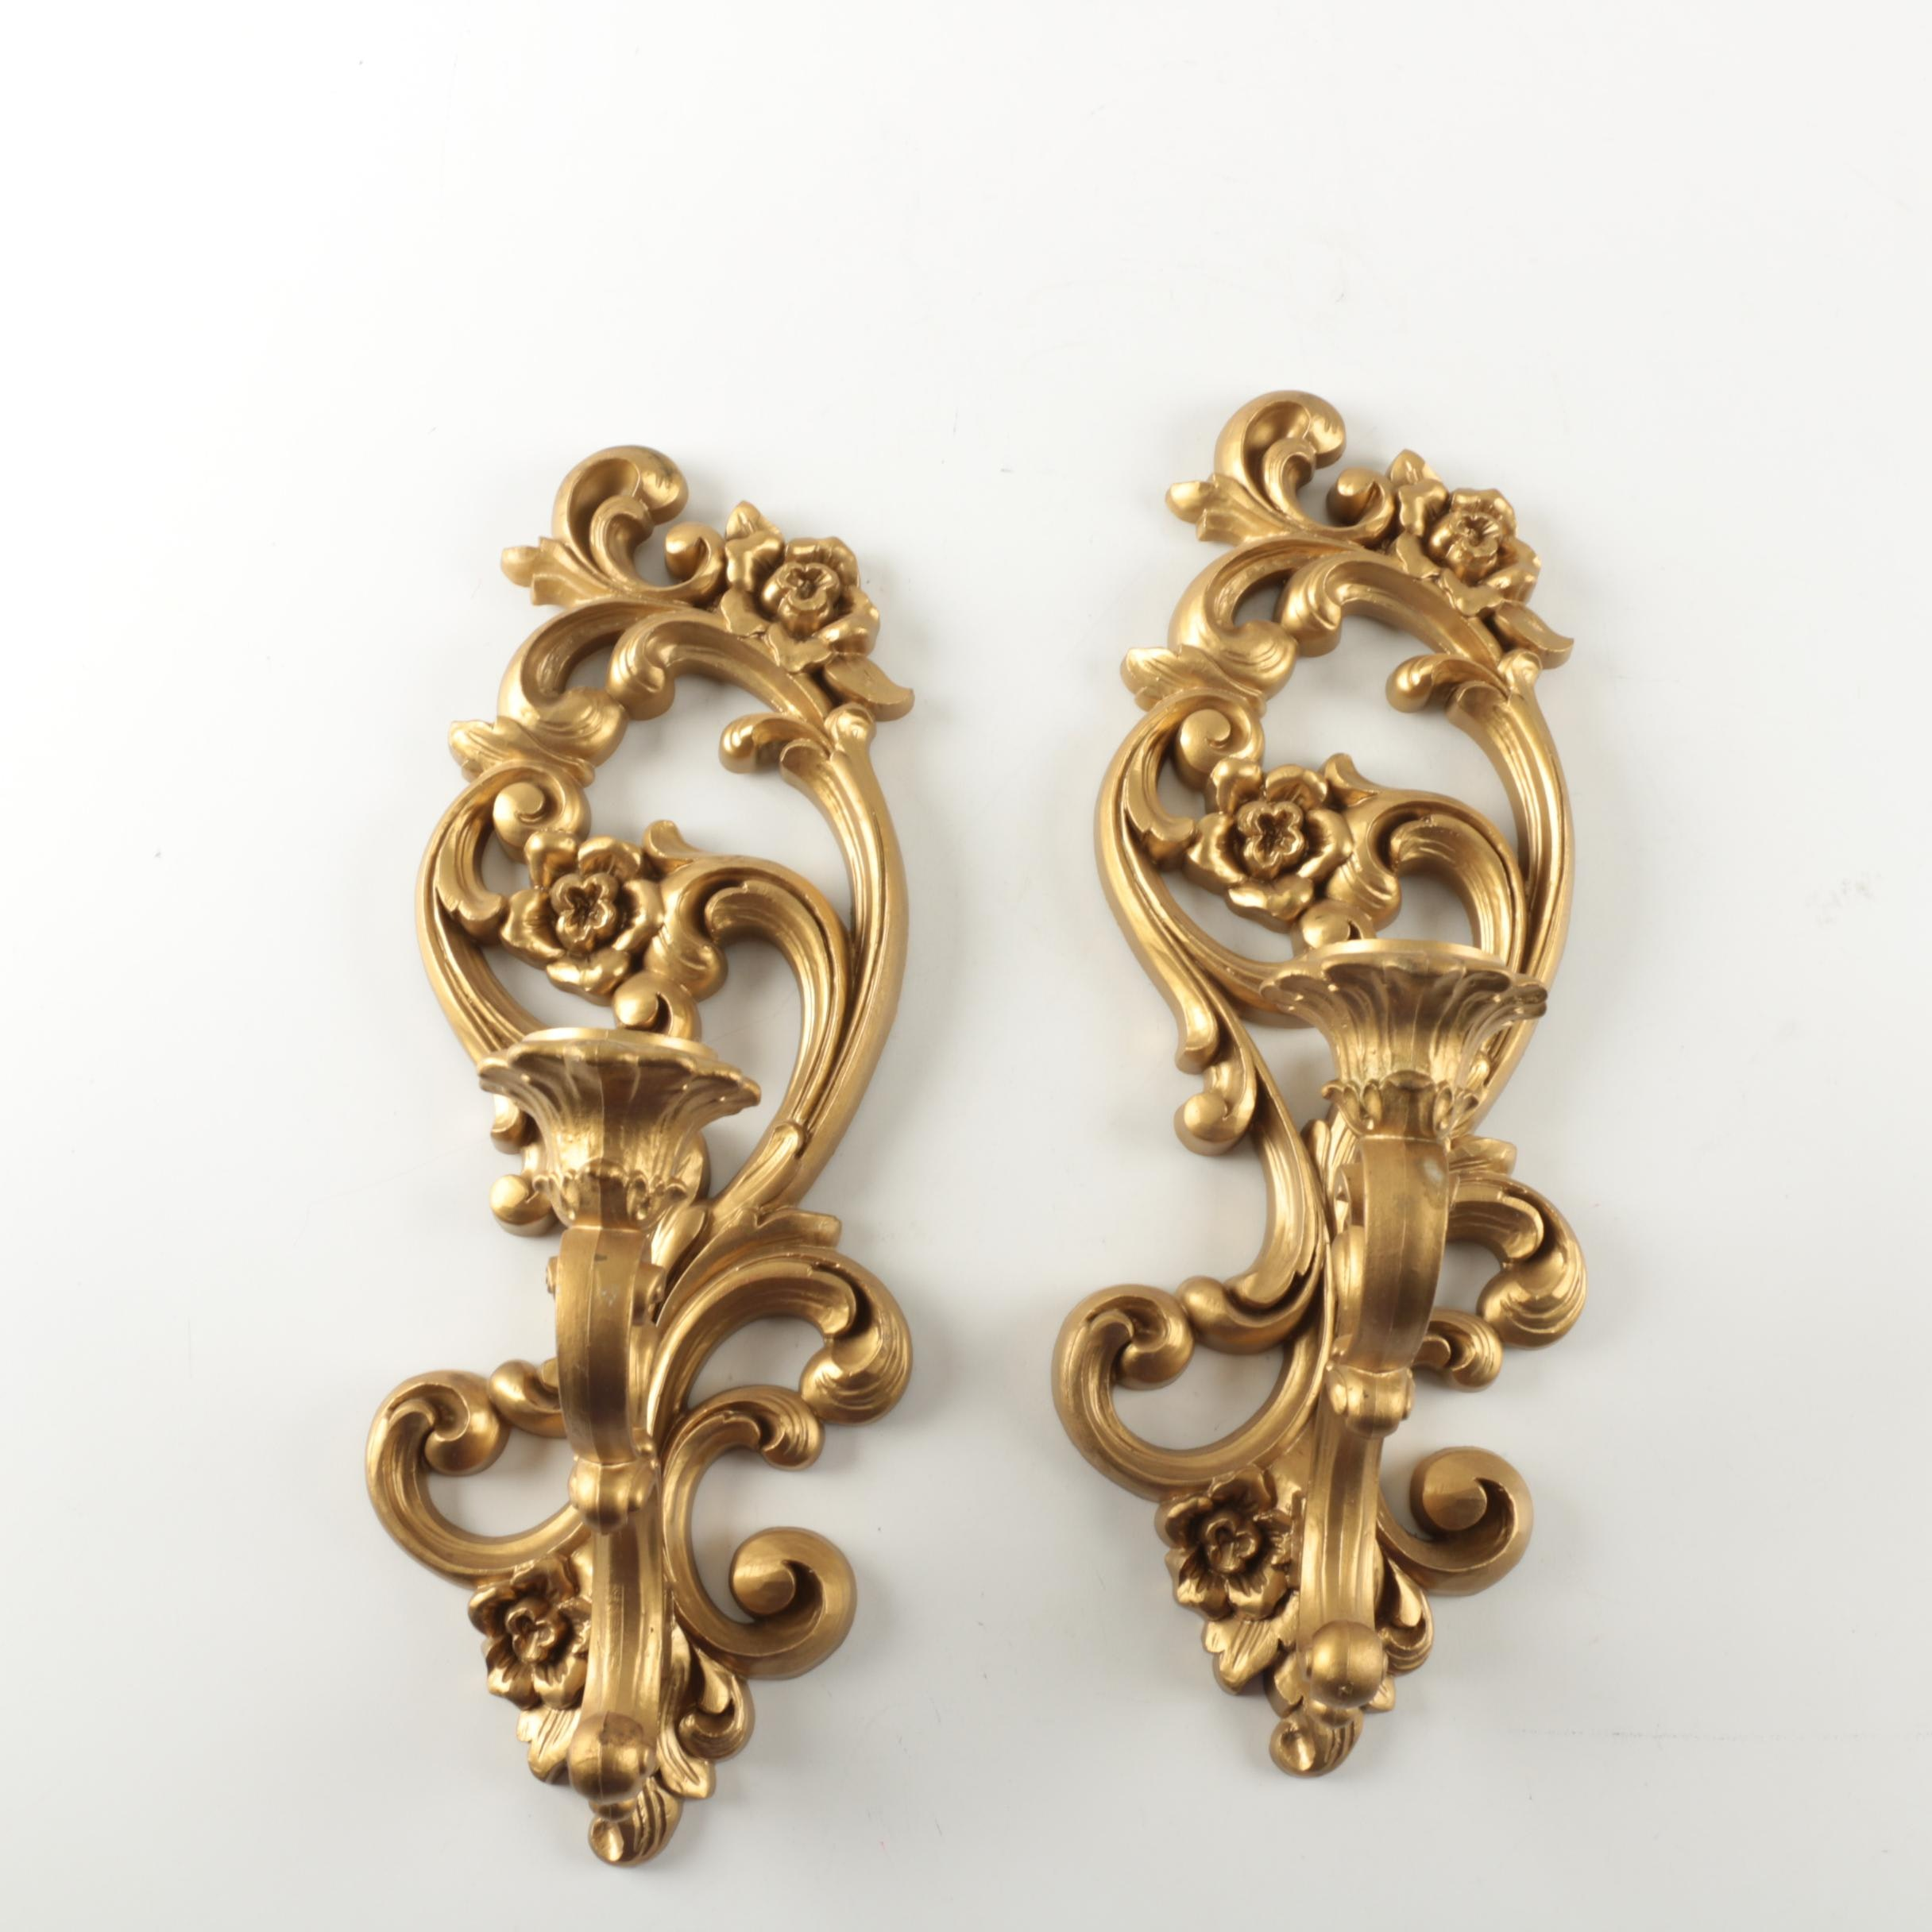 Ornate Homco Gold Tone Wall Sconces